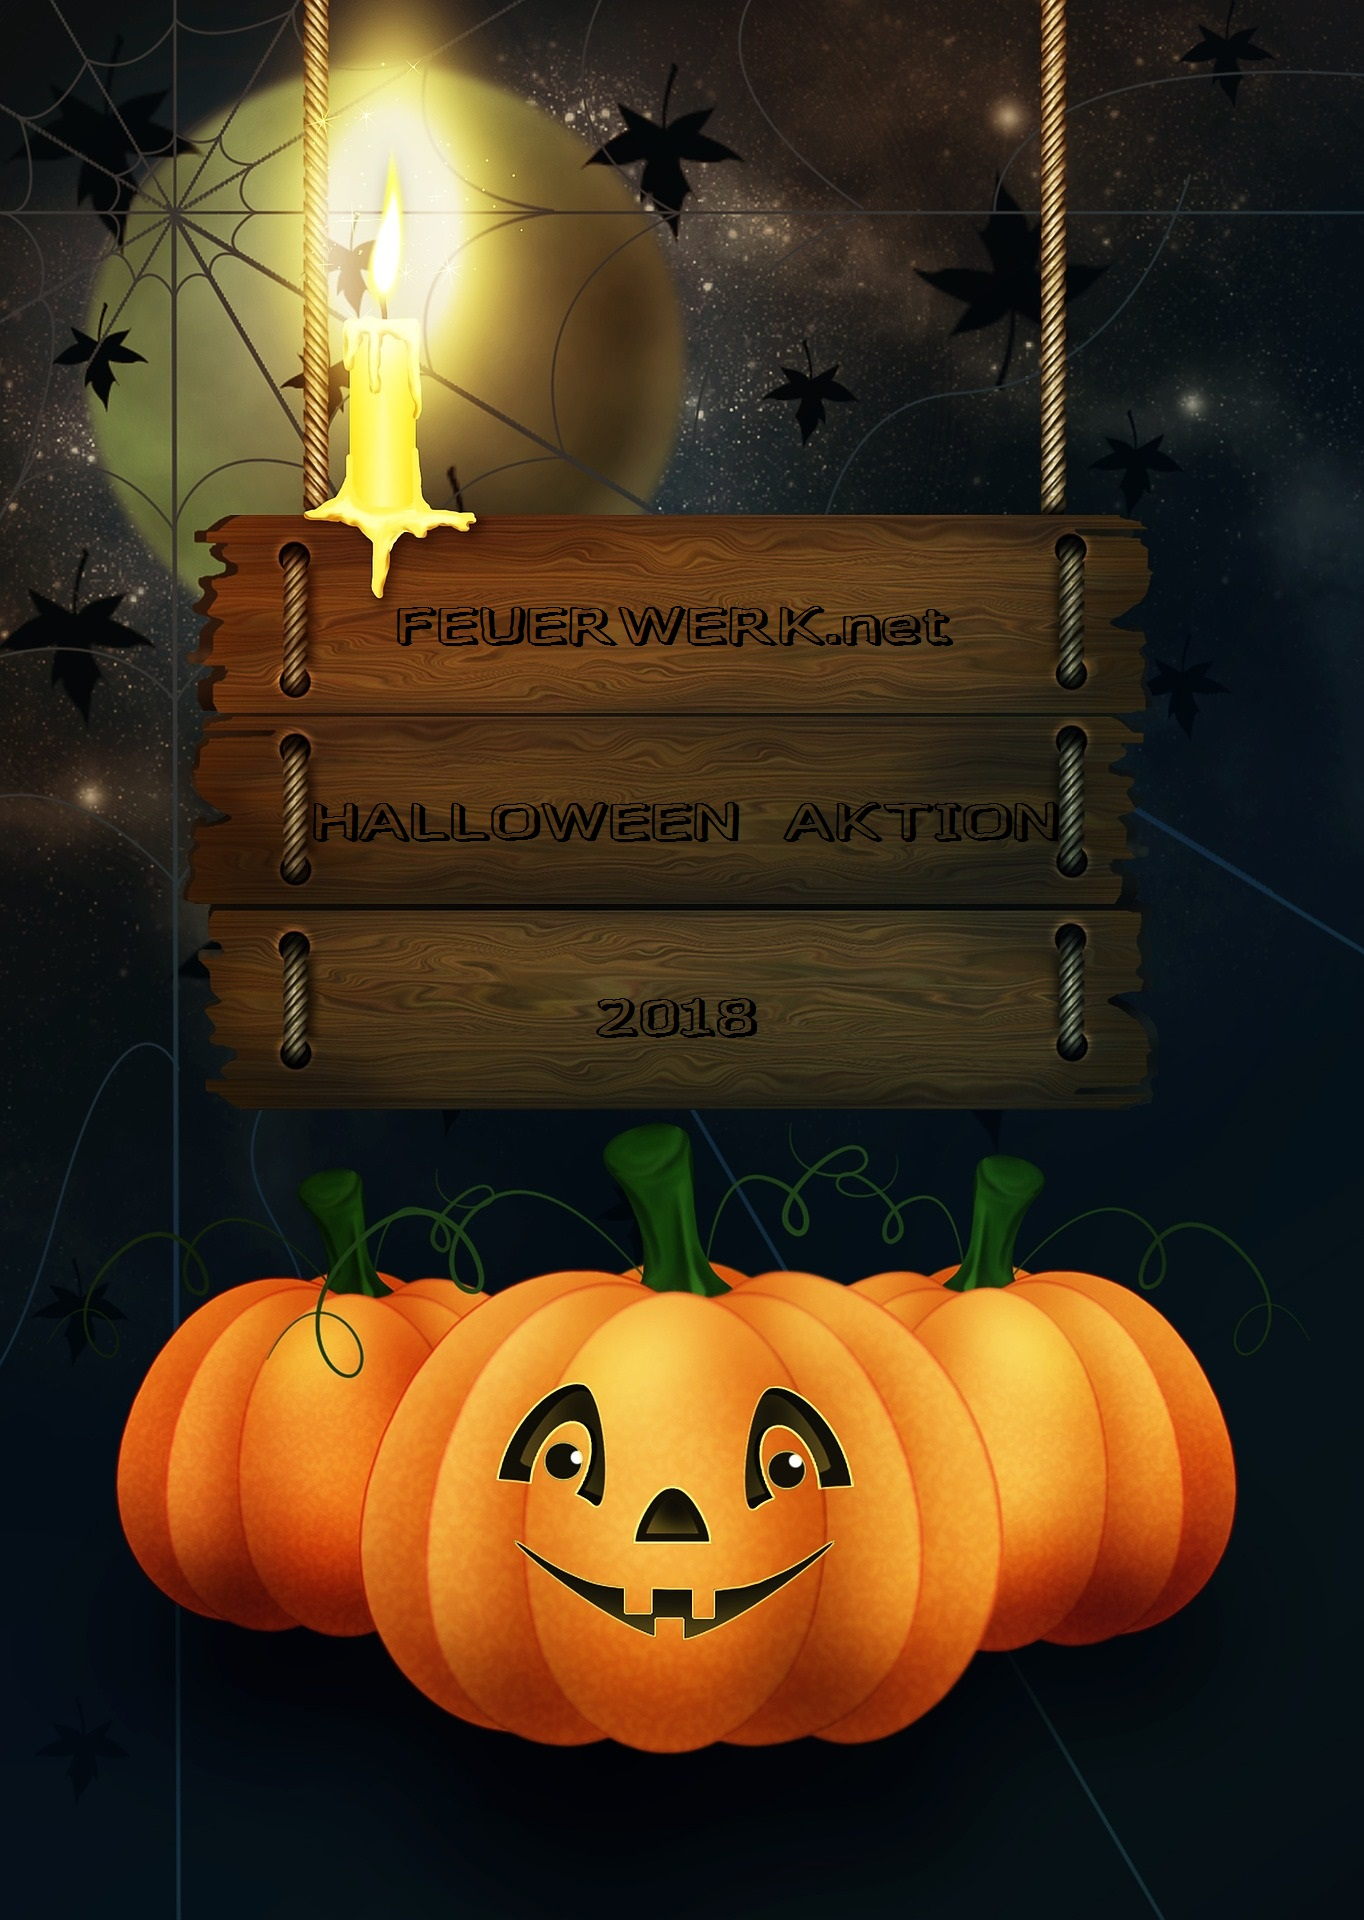 Halloween Aktion 2018.jpg